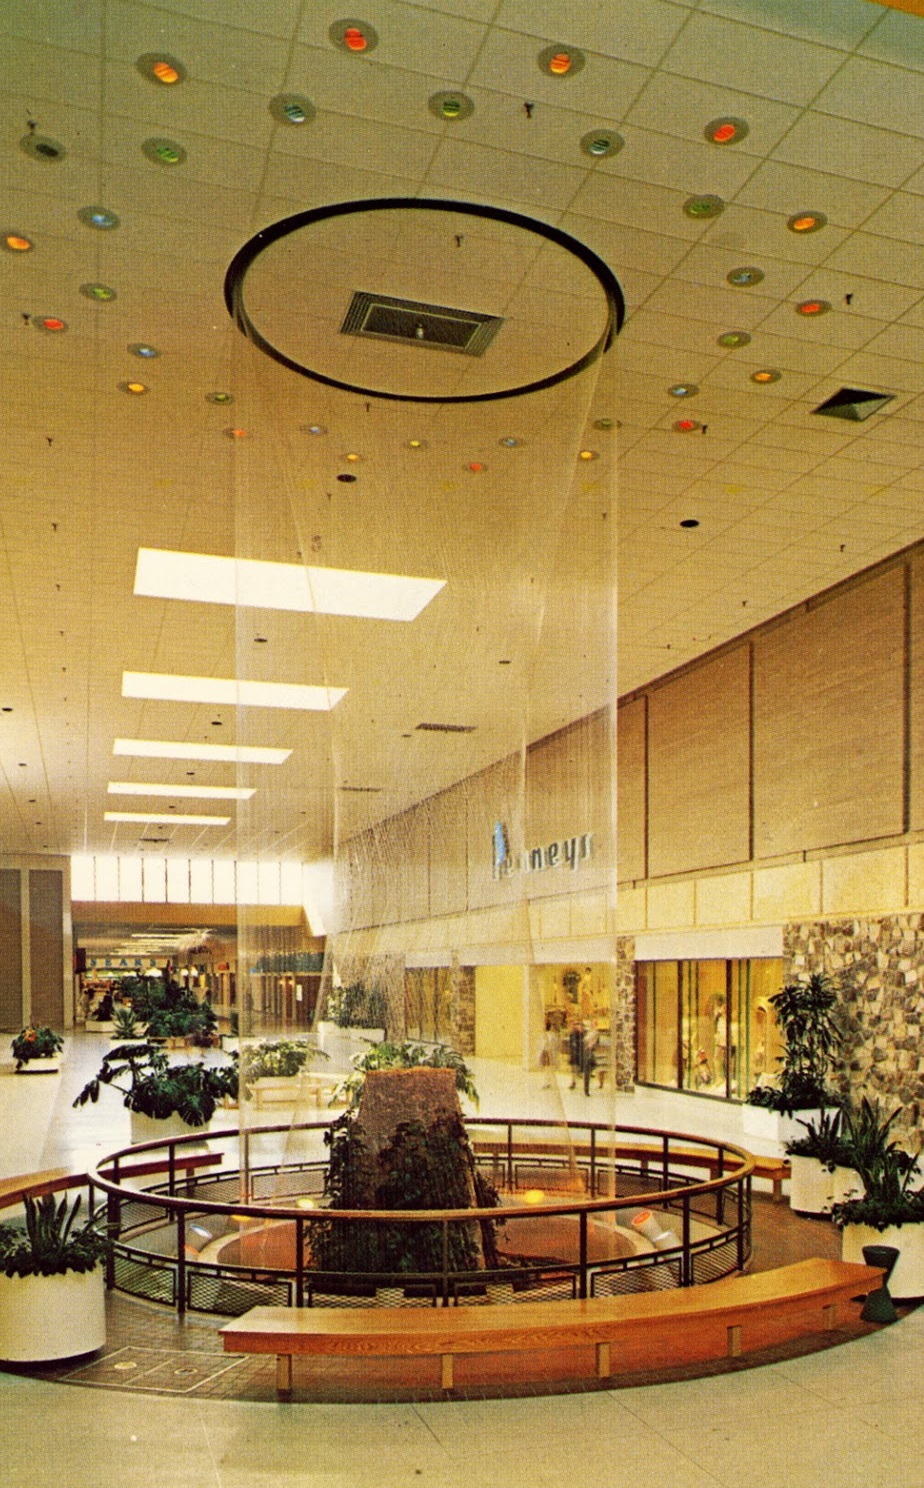 Water Less Wonderfall Features Were Common In Mid To Late 1960s Malls. They  Could Be Found At Southern Californiau0027s TOPANGA PLAZA, South Floridau0027s PALM  ...